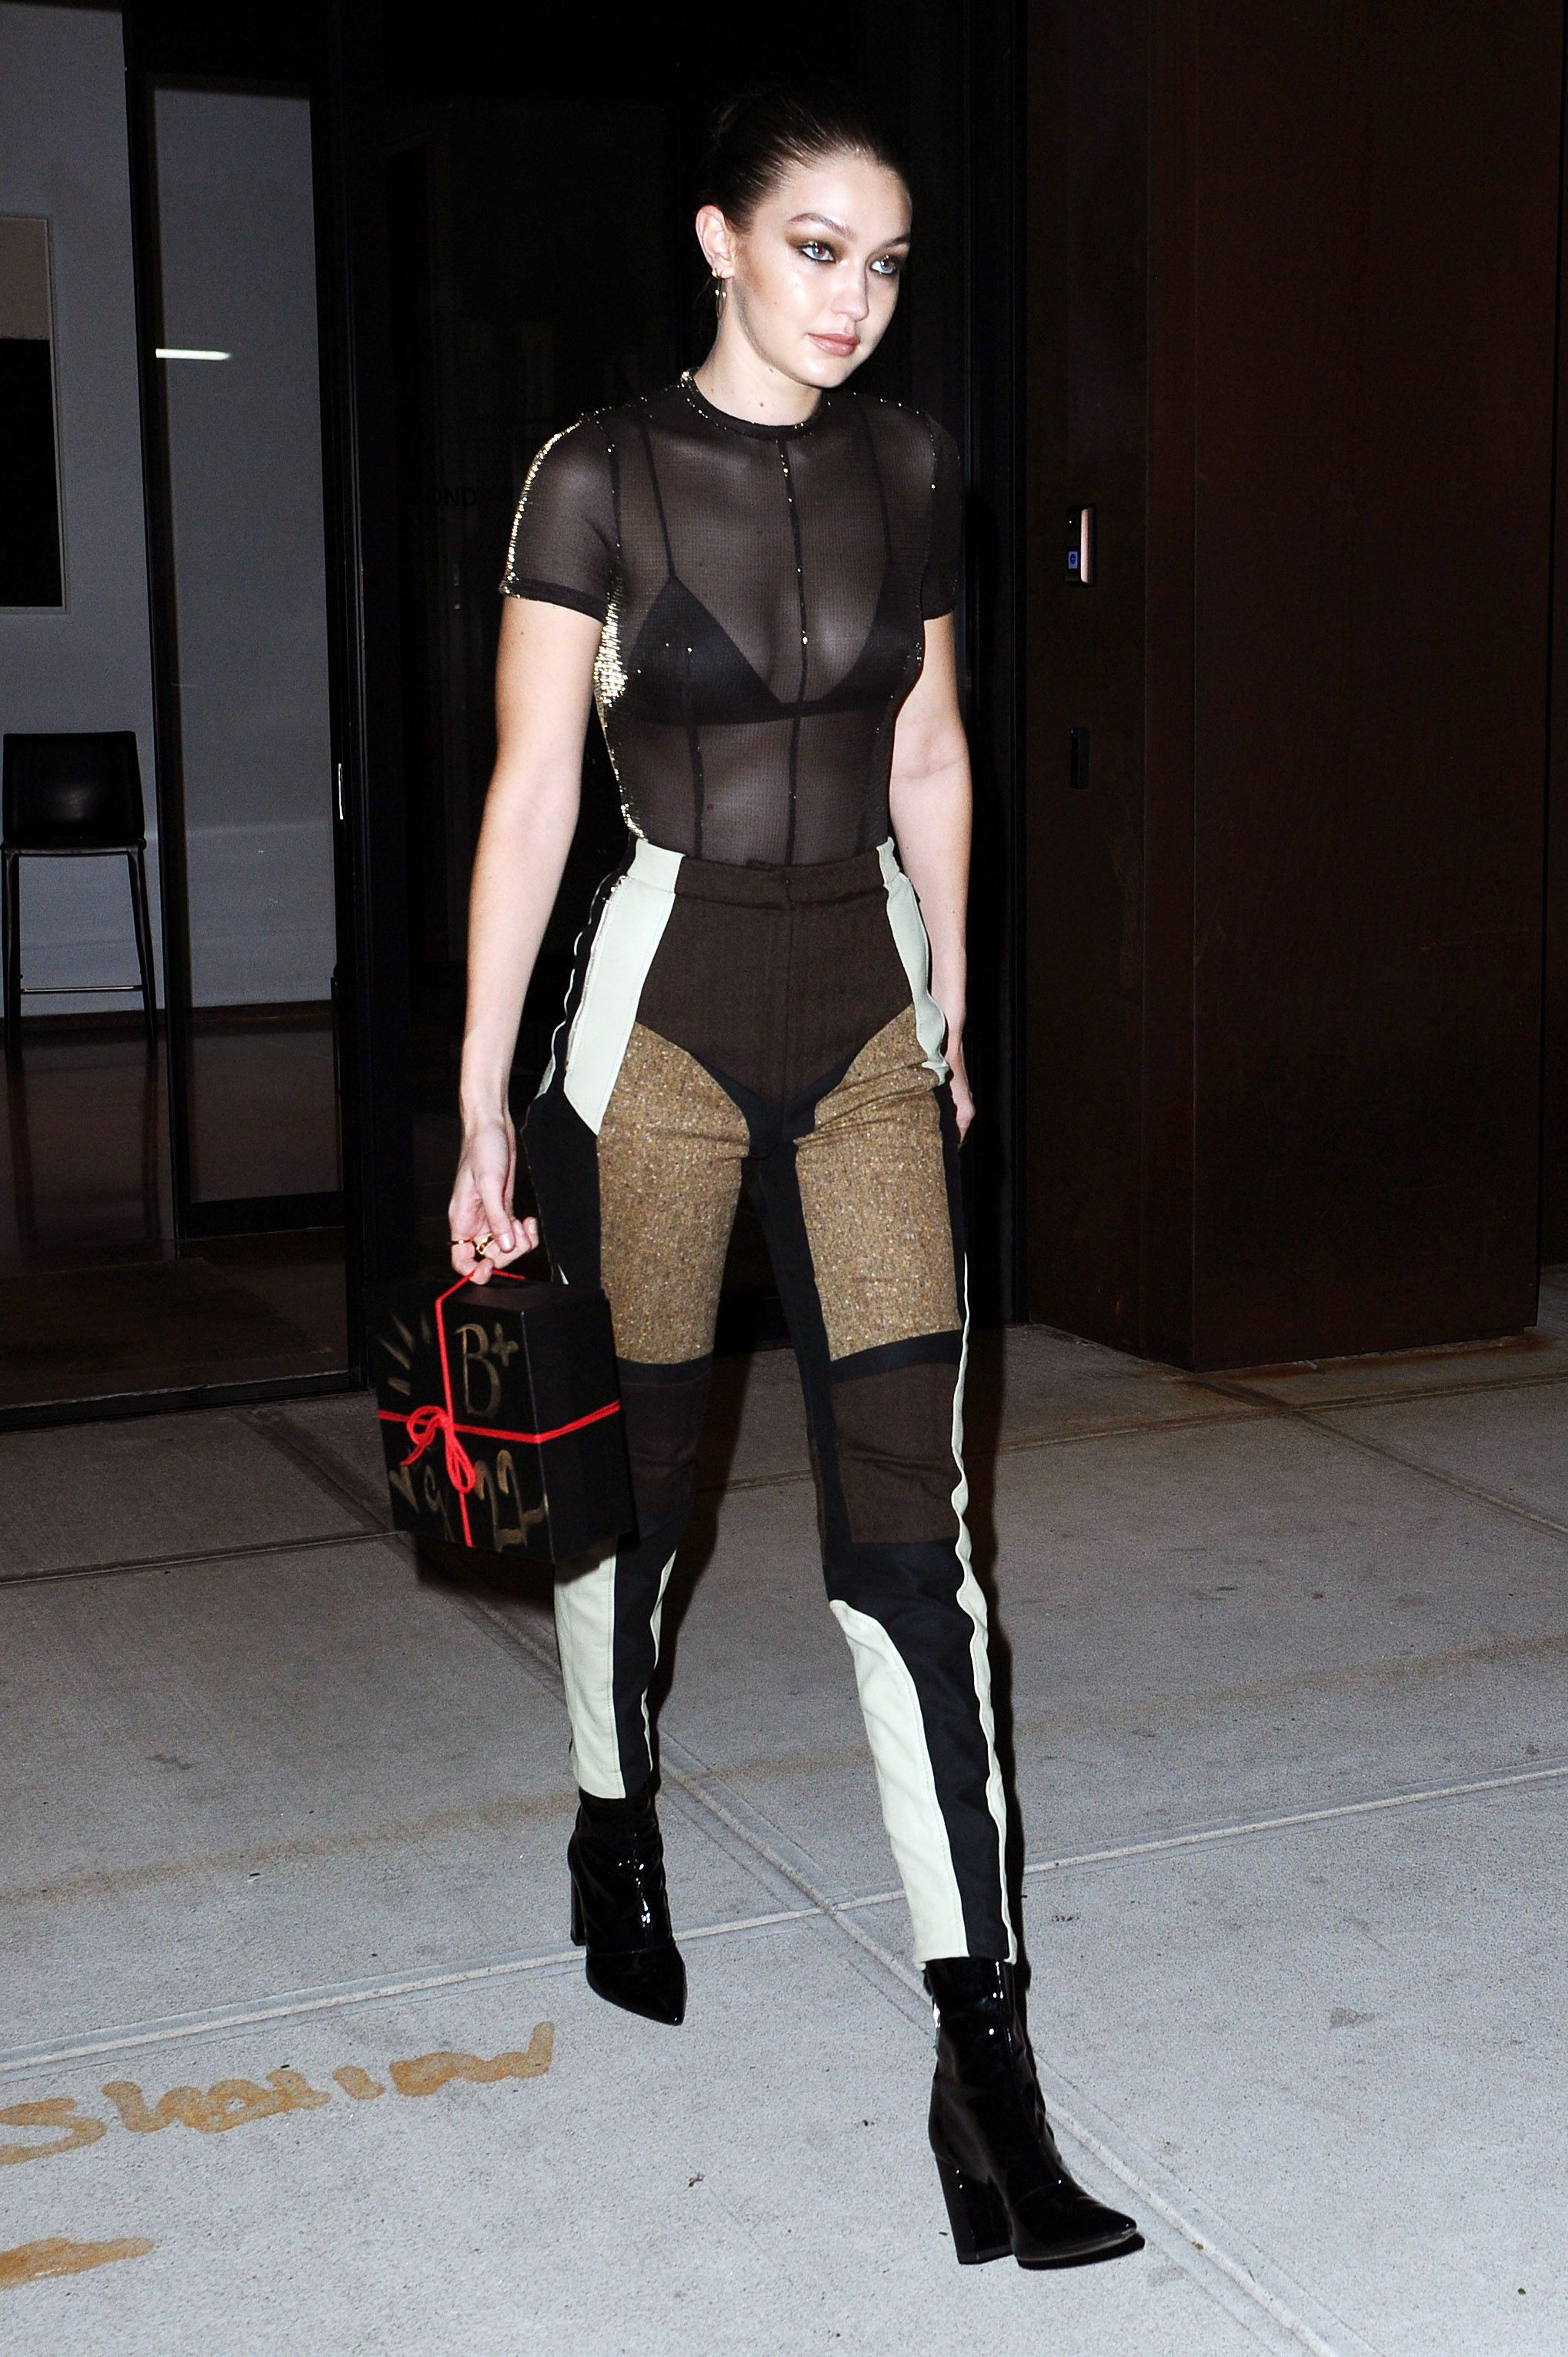 October 9, 2018 Gigi attended her sister's 22nd birthday in a sheer top that exposed her black Fleur du Mal bralette and wore patchwork-inspired pants. To give her outfit that edgy feel, she wore heavy dark eyeliner and kept her accessories strictly black too.